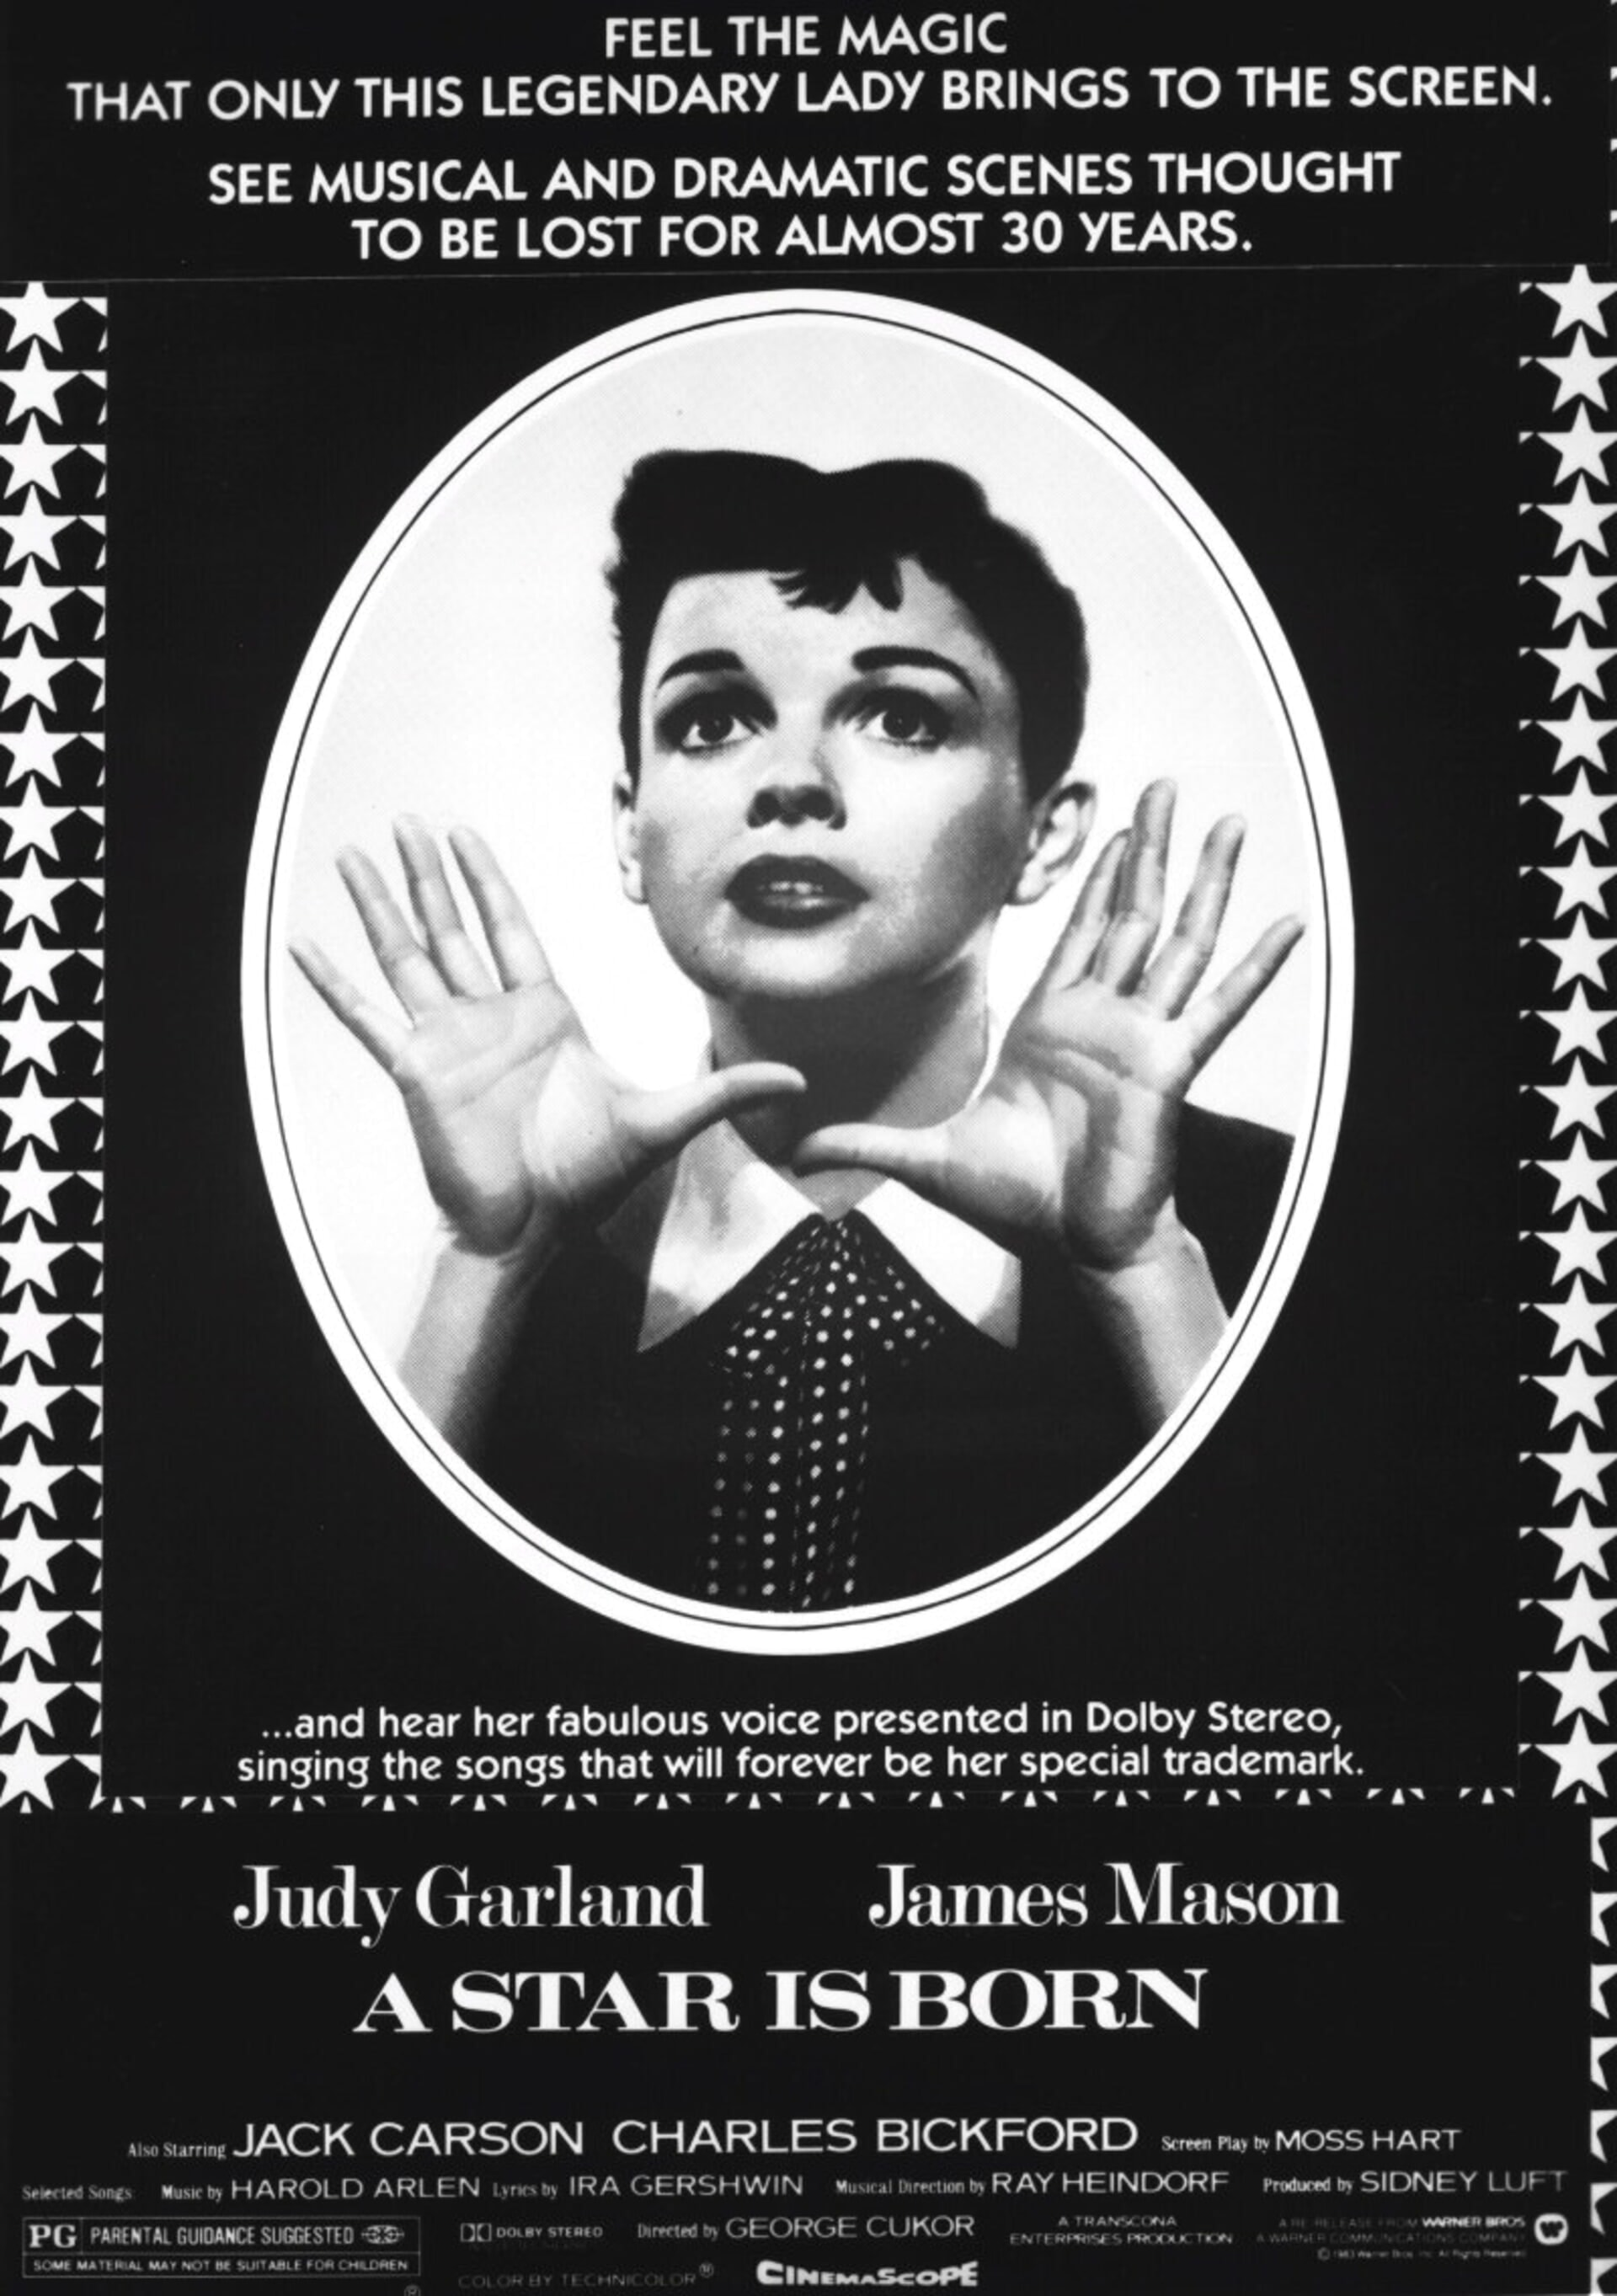 A Star Is Born (1954) - Poster 2